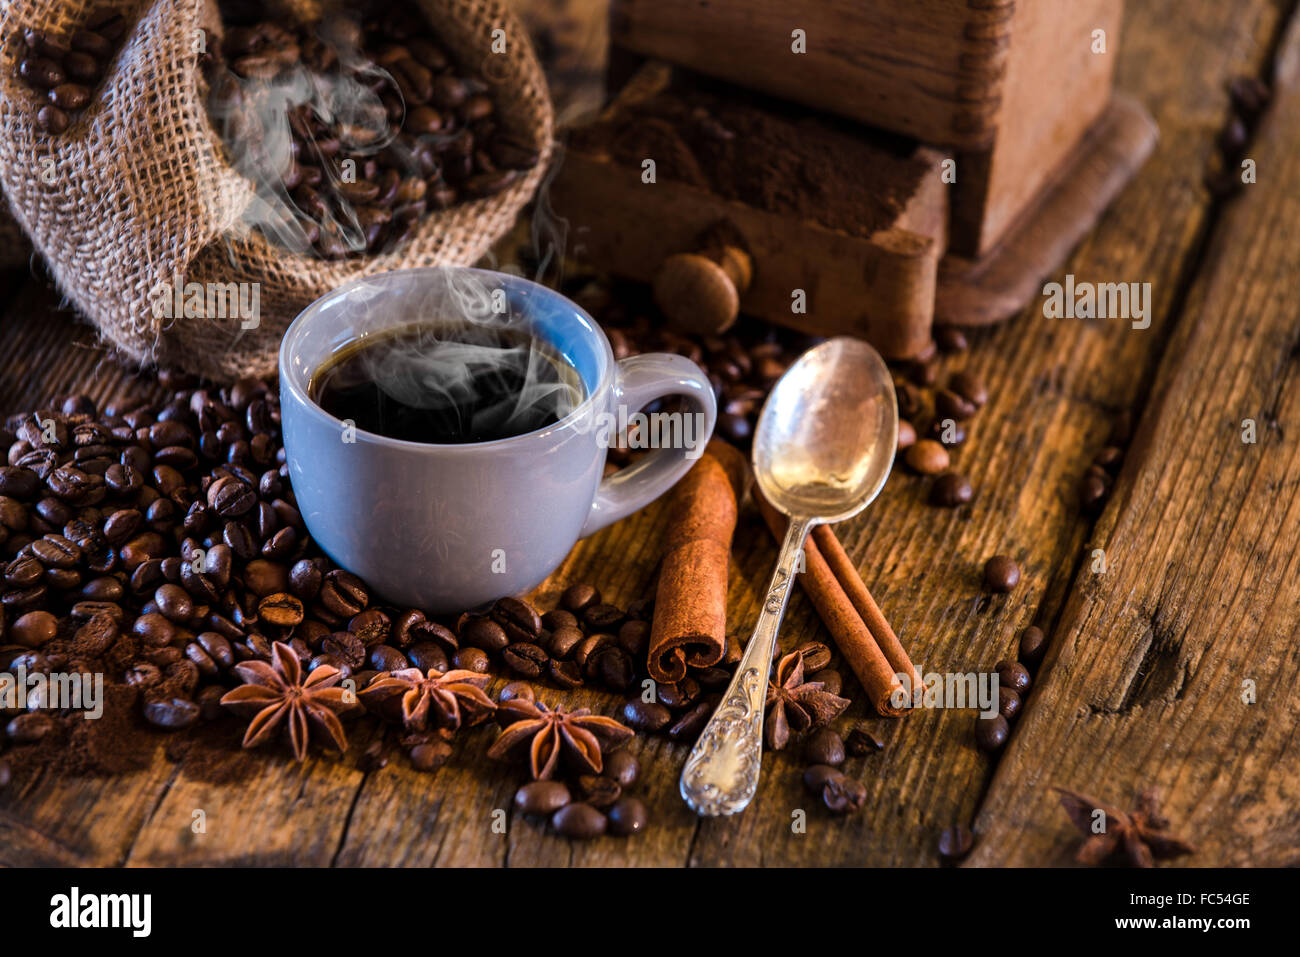 Rural Italian breakfast of coffee and croissant on a wooden table with a kerosene lamp. - Stock Image